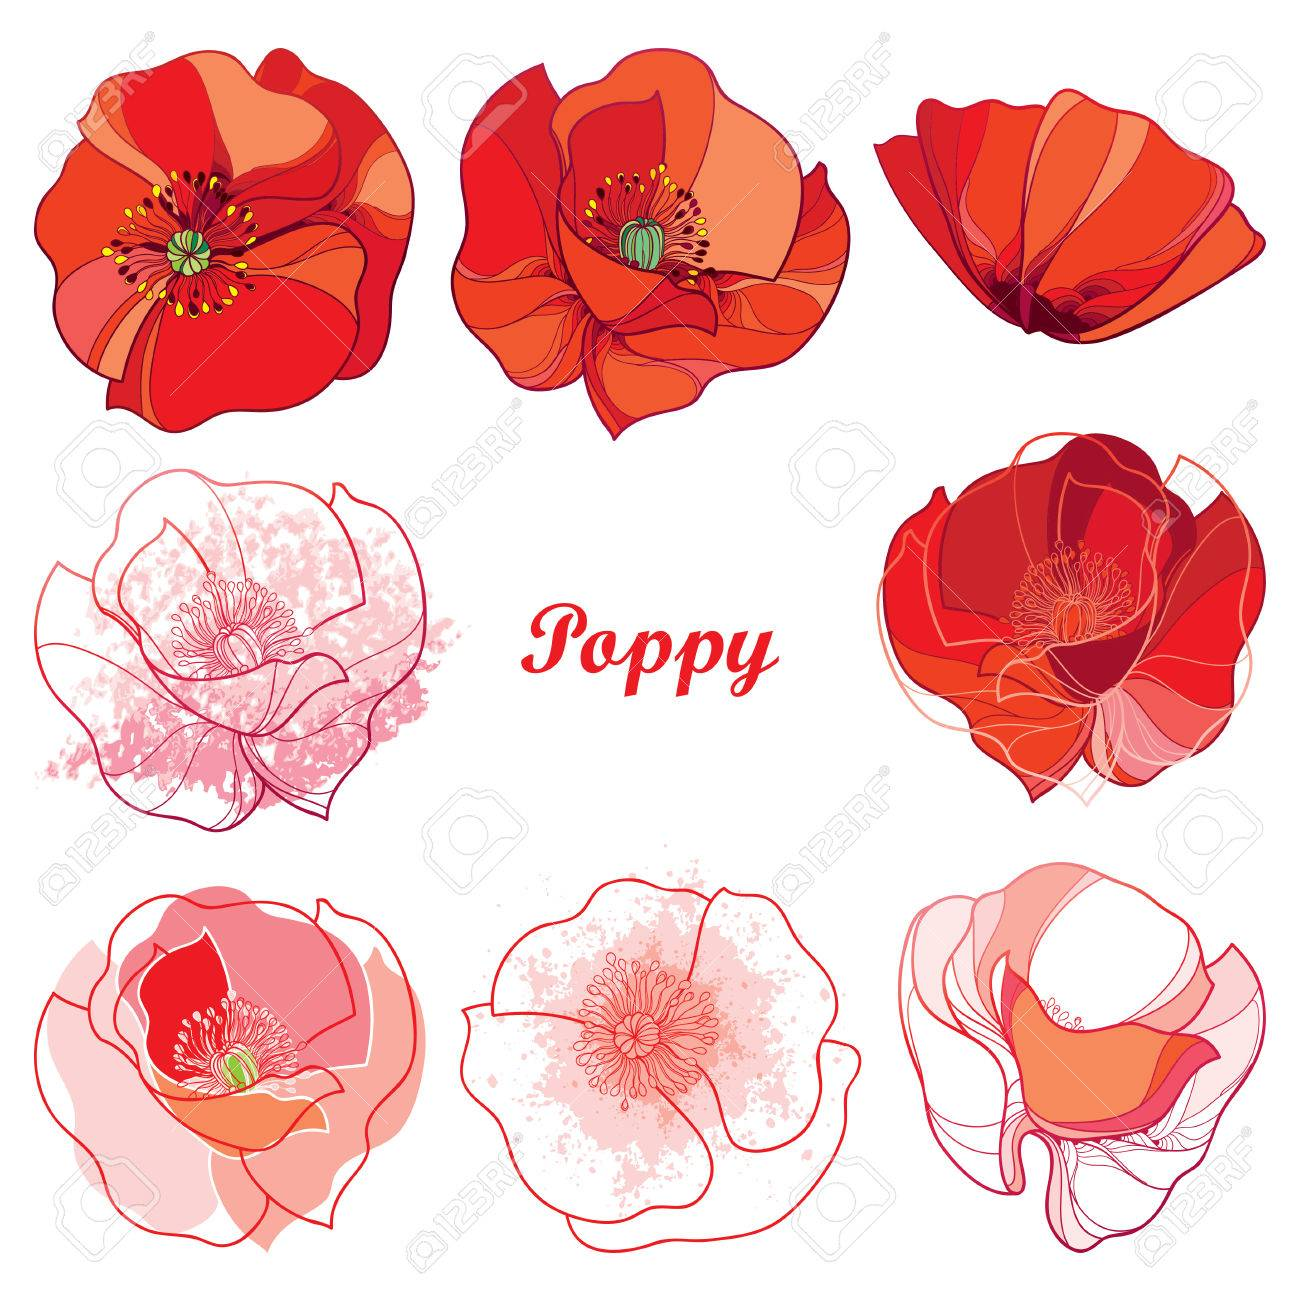 Set With Outline Poppy Flower Ornate Flowers In Red White And